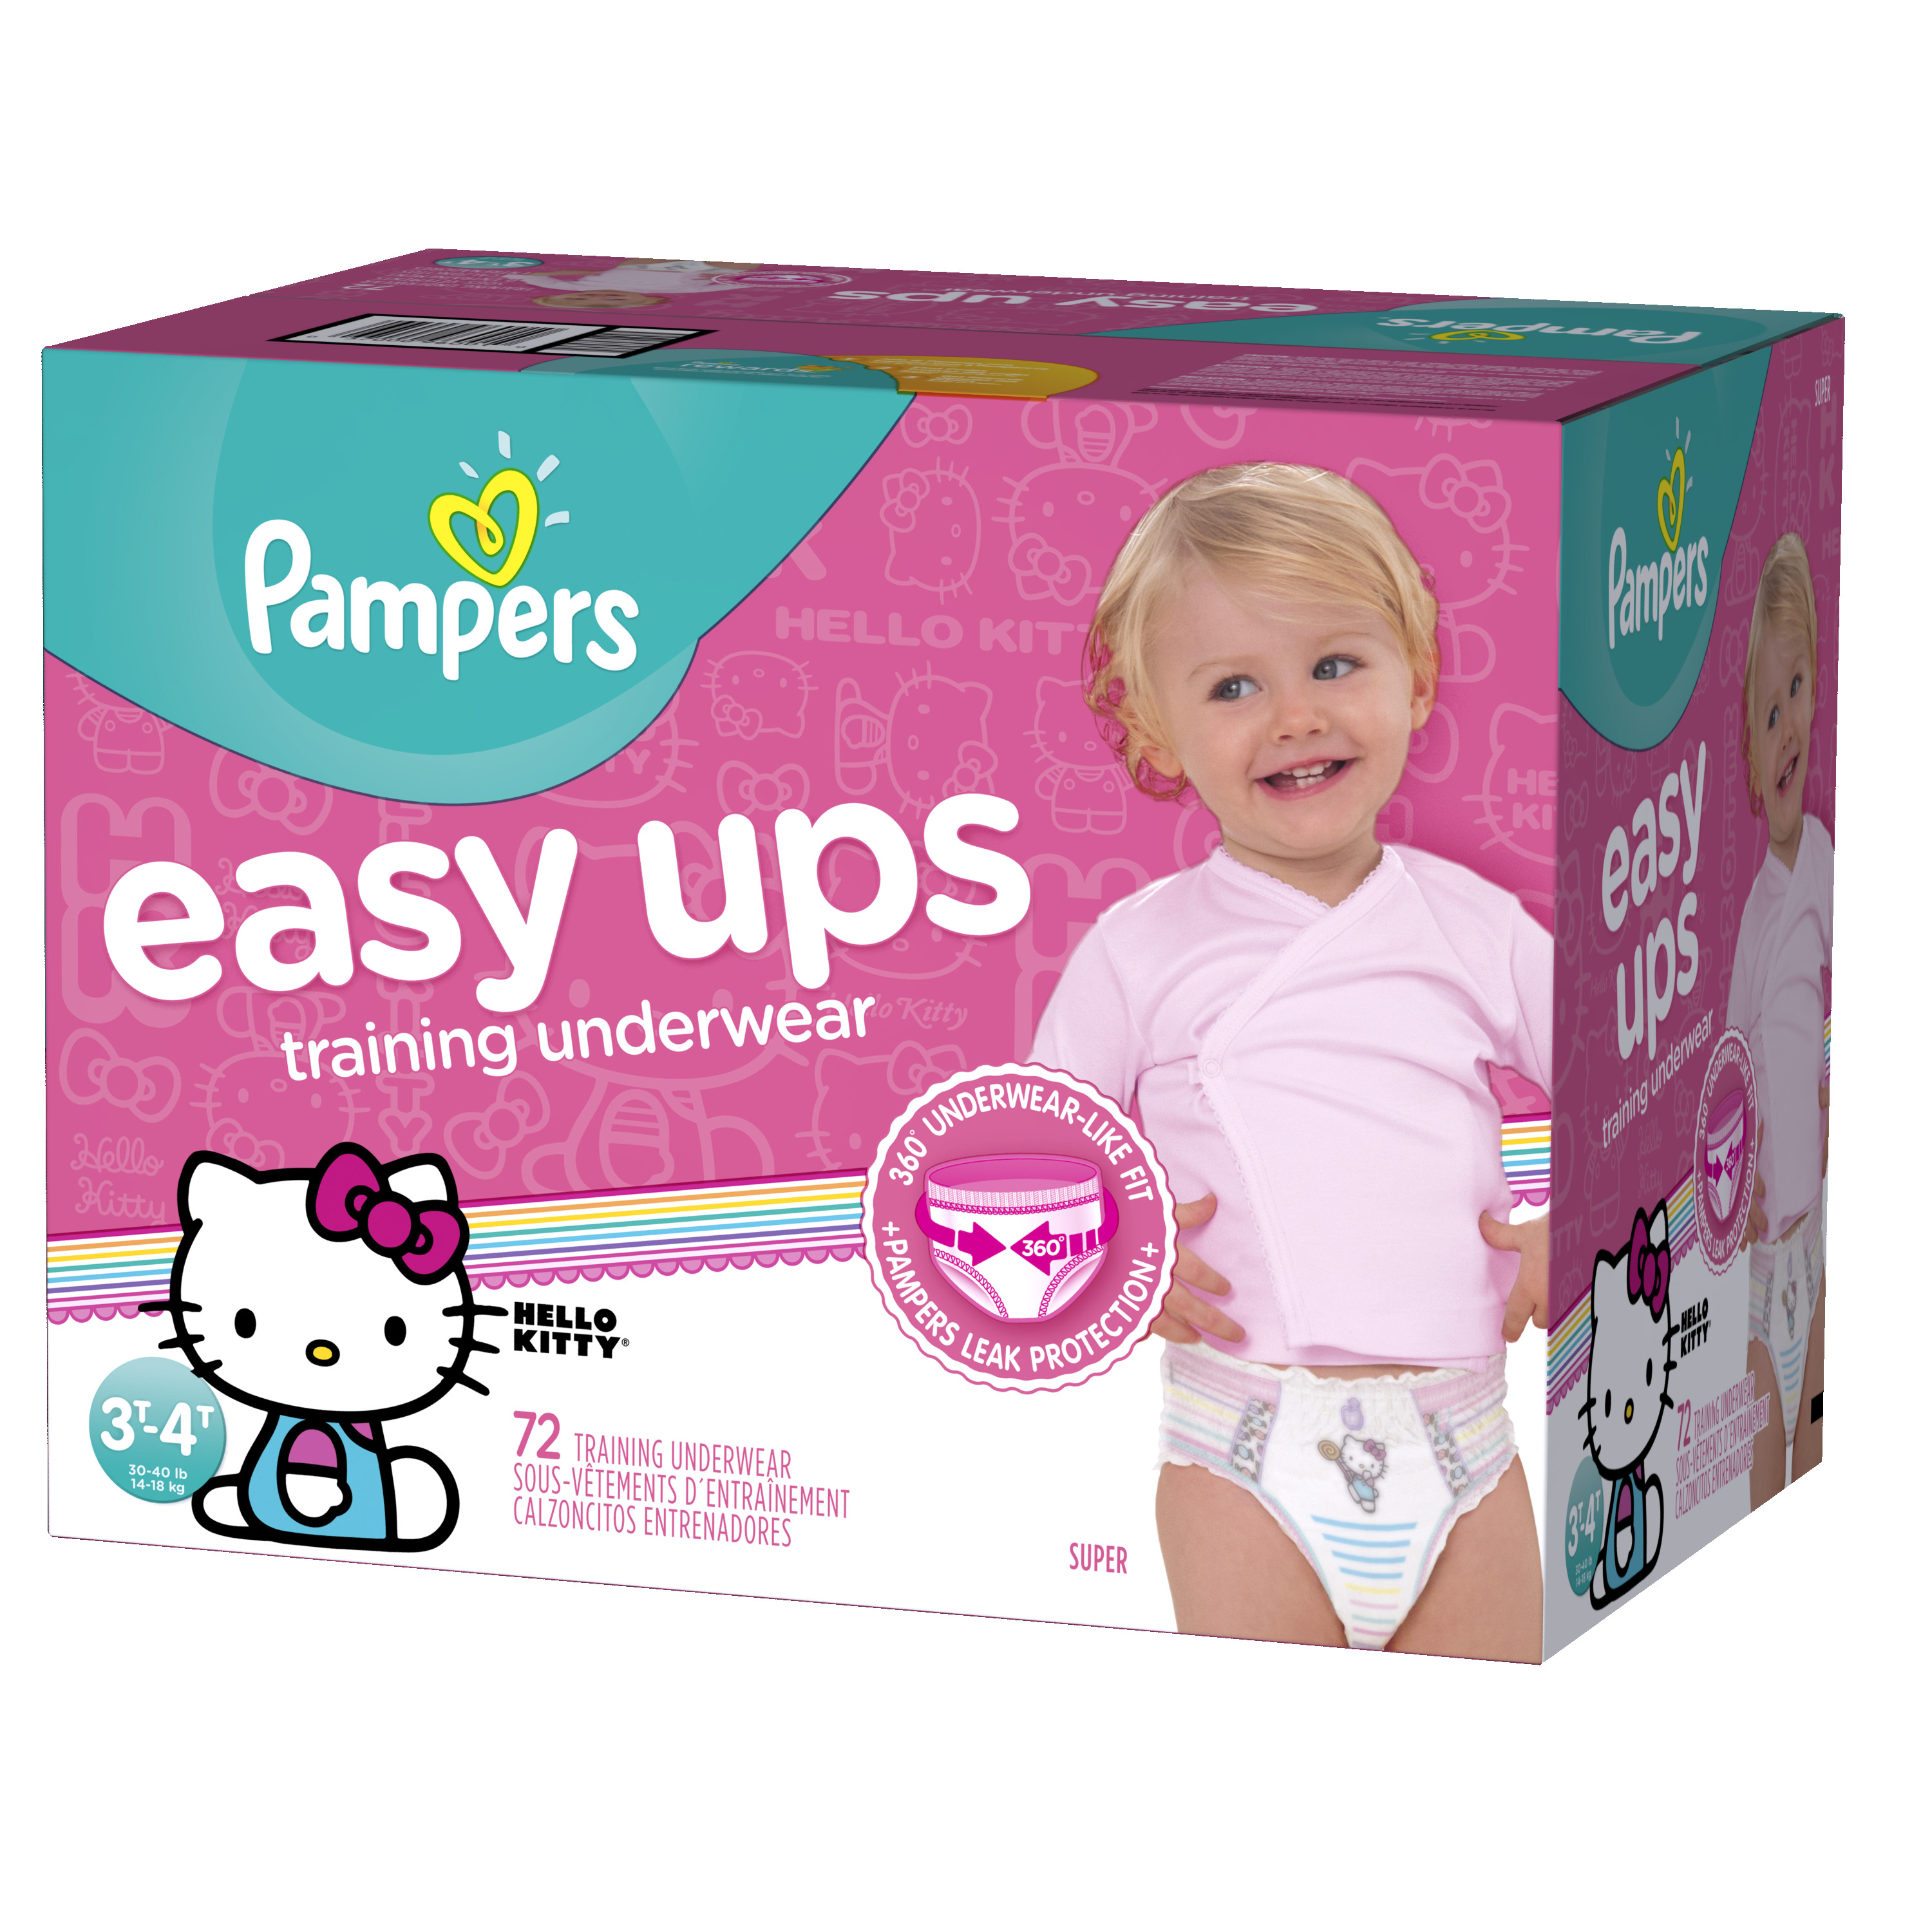 Pampers Easy Ups Training Underwear Girls Size 5 3T-4T 72 Count